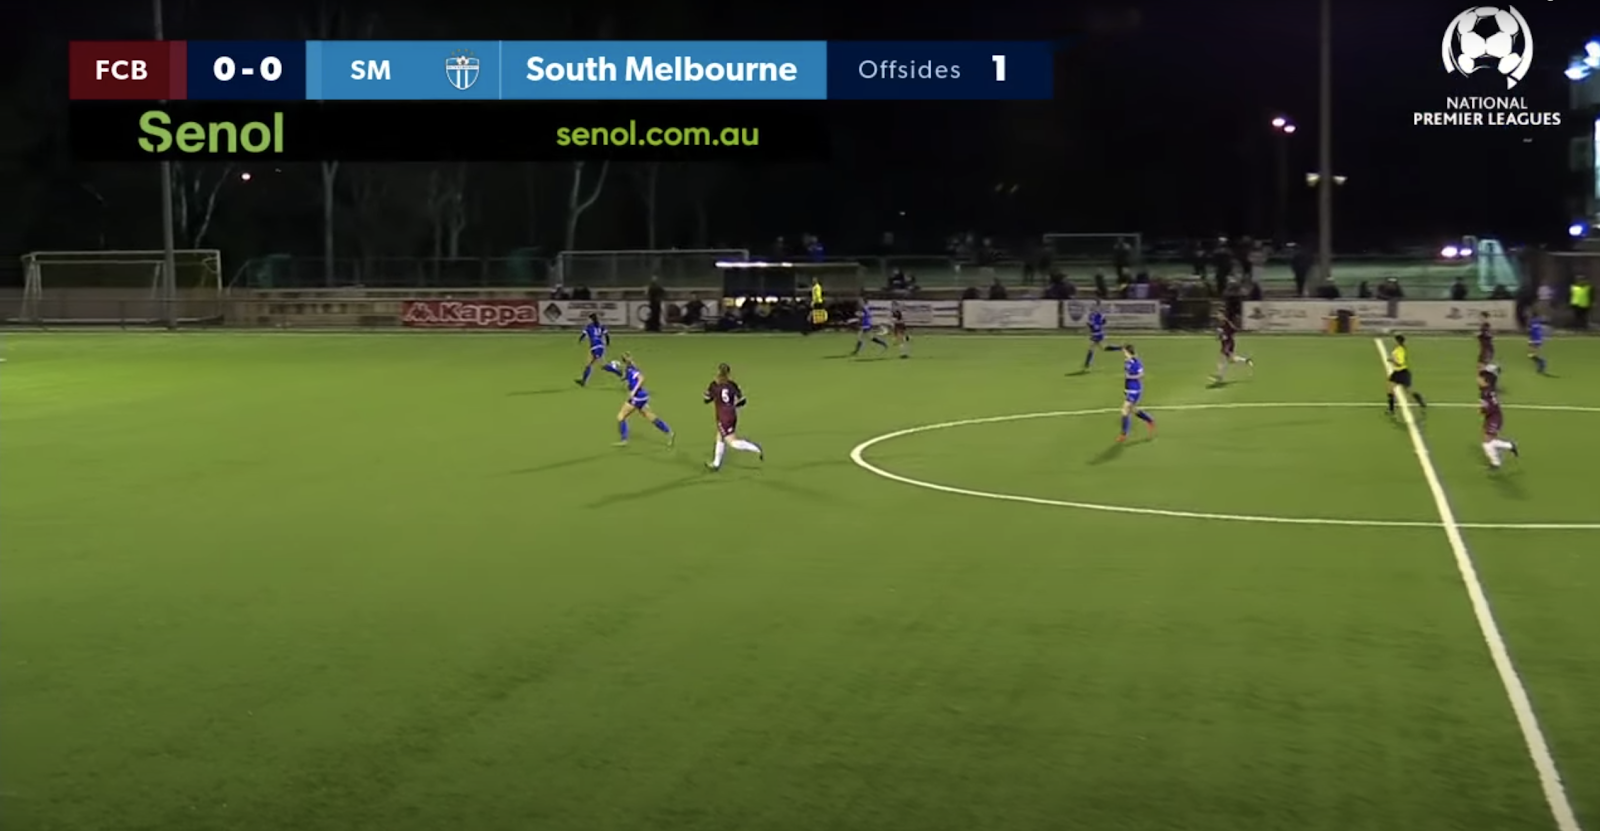 Bulleen Lions vs. South Melbourne in the National Premier Leagues Women's. Source: https://www.youtube.com/watch?v=8YJ95uqehFY